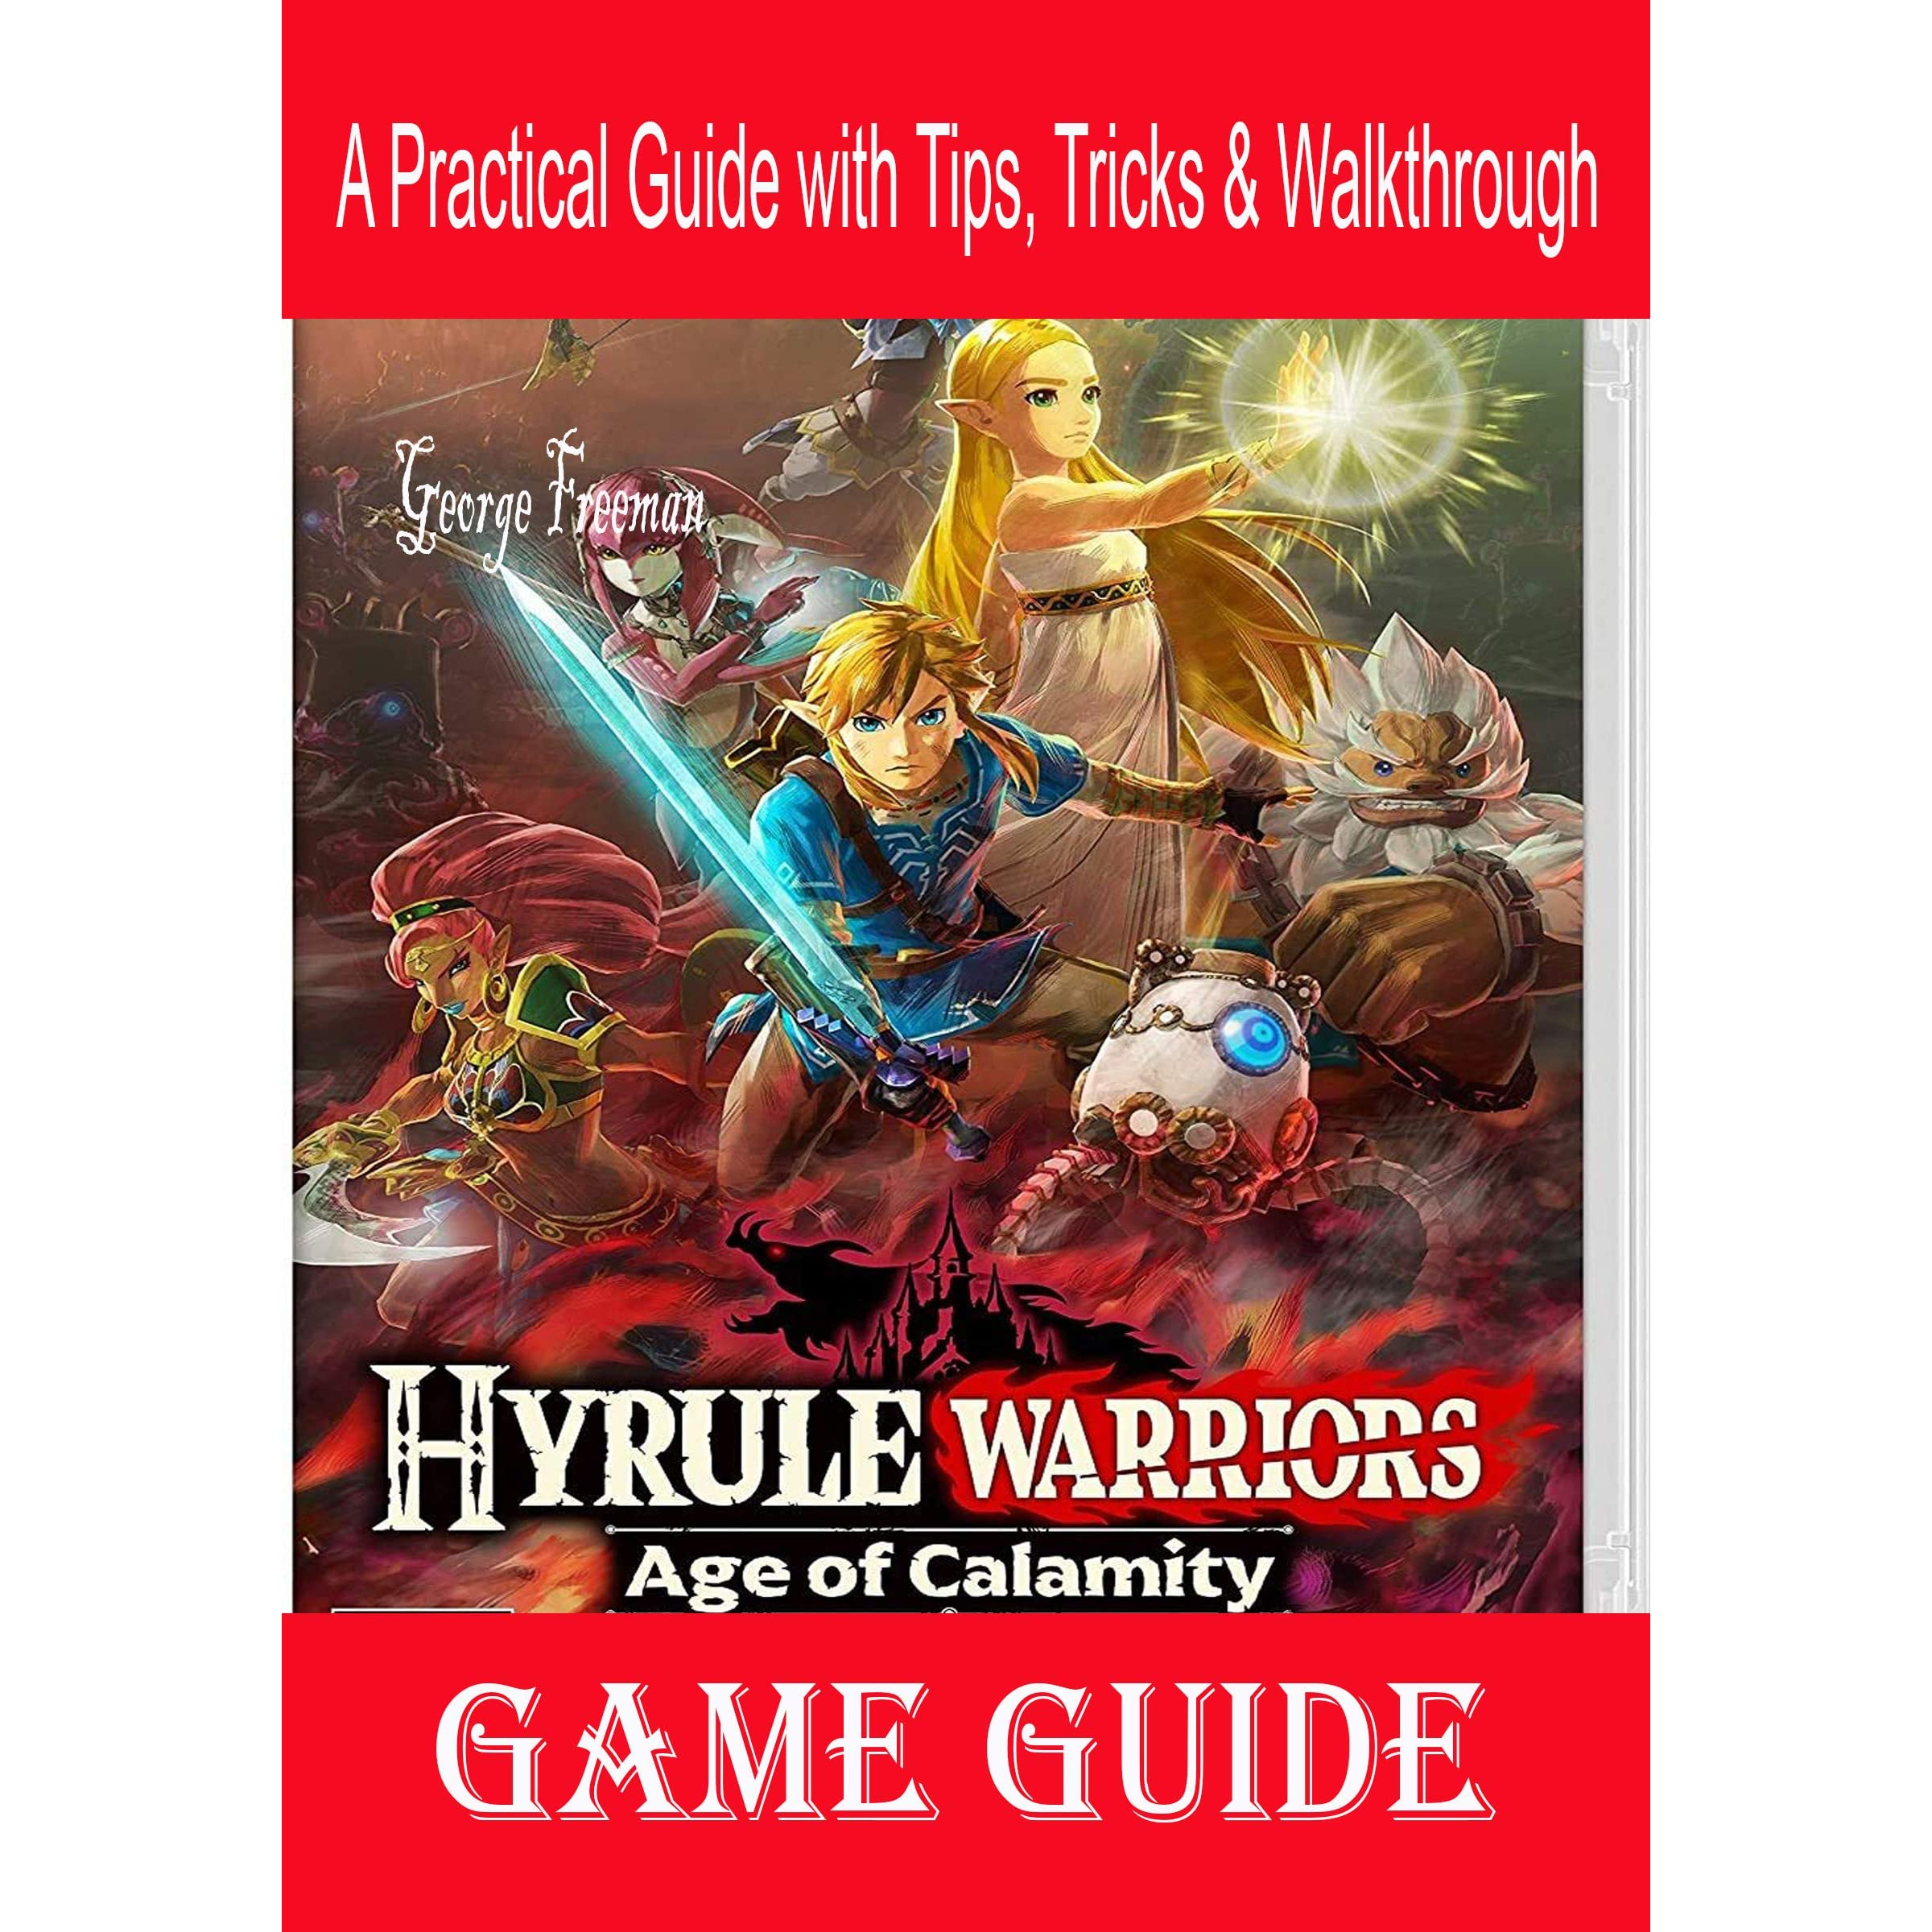 Hyrule Warriors Age Of Calamity Game Guide A Practical Guide With Tips Tricks Walkthrough By George Freeman